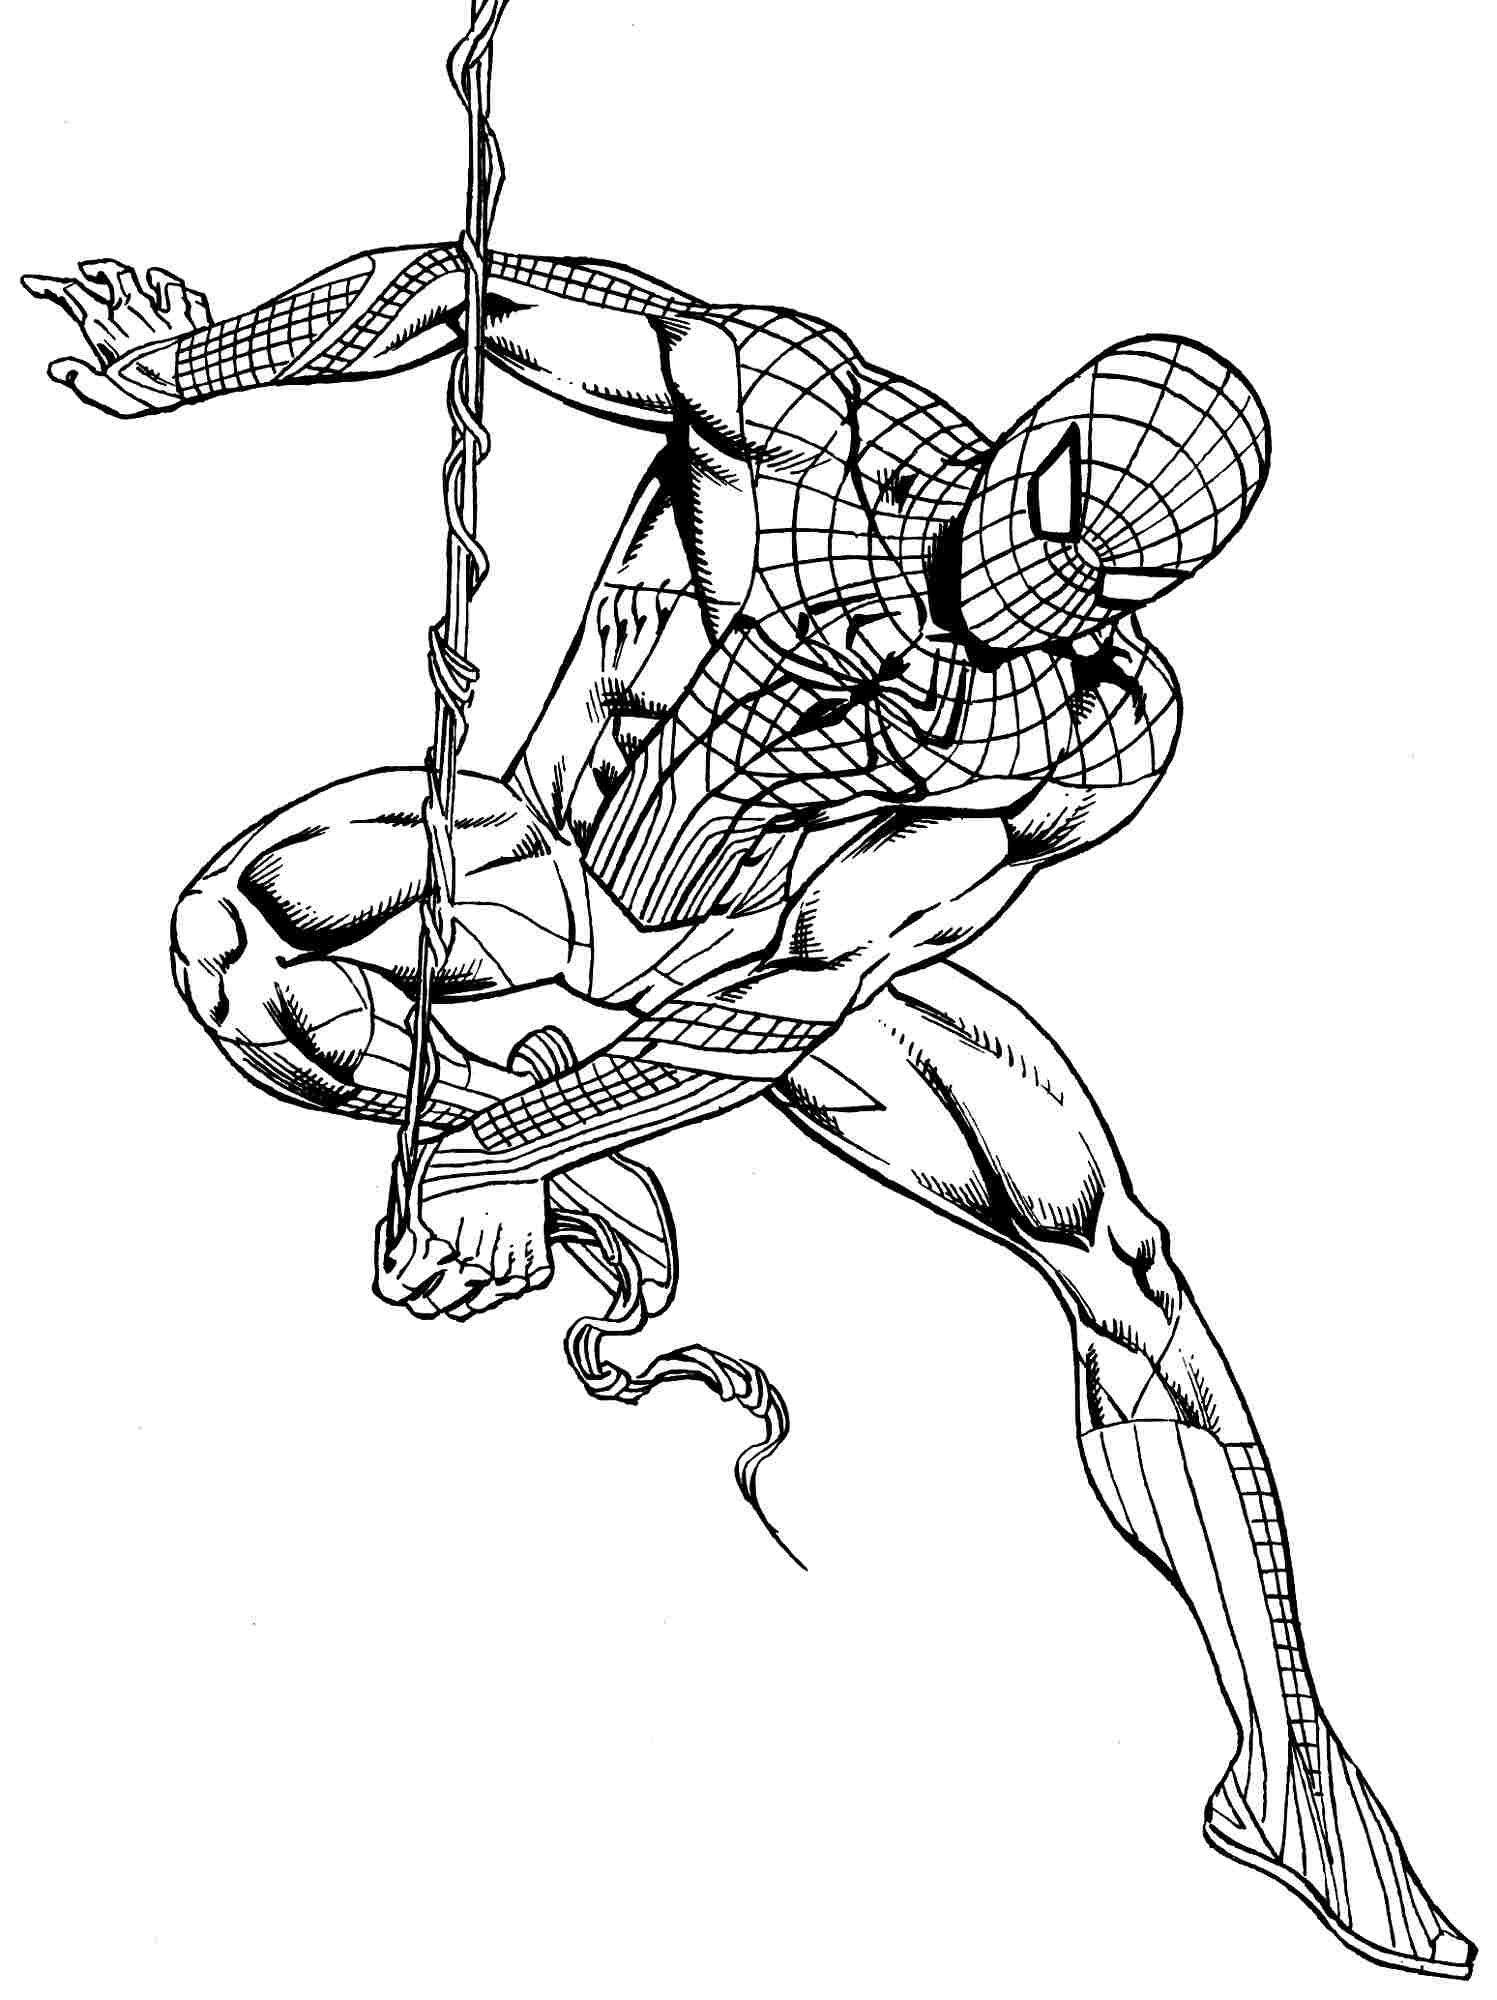 coloring pages spiderman easy symbol - photo#21